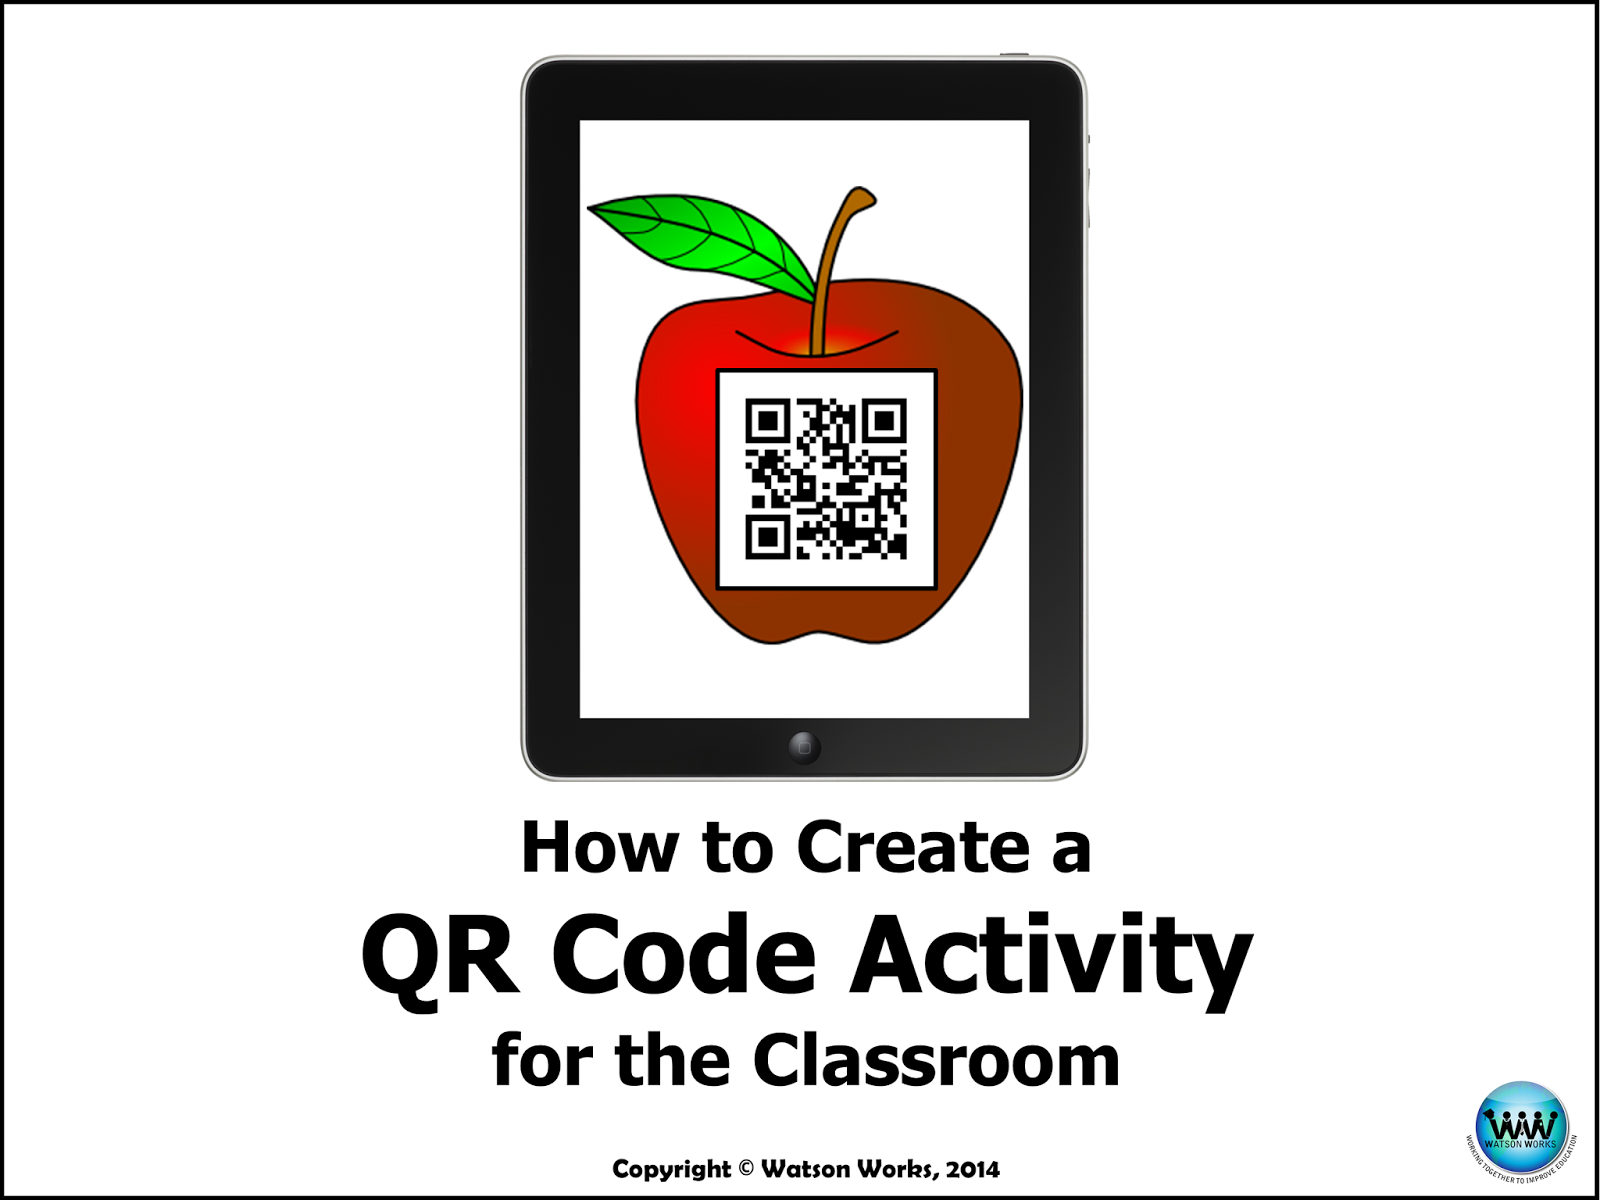 http://www.teacherspayteachers.com/Product/How-to-Create-a-QR-Code-Activity-for-the-Classroom-User-Guide-1519602